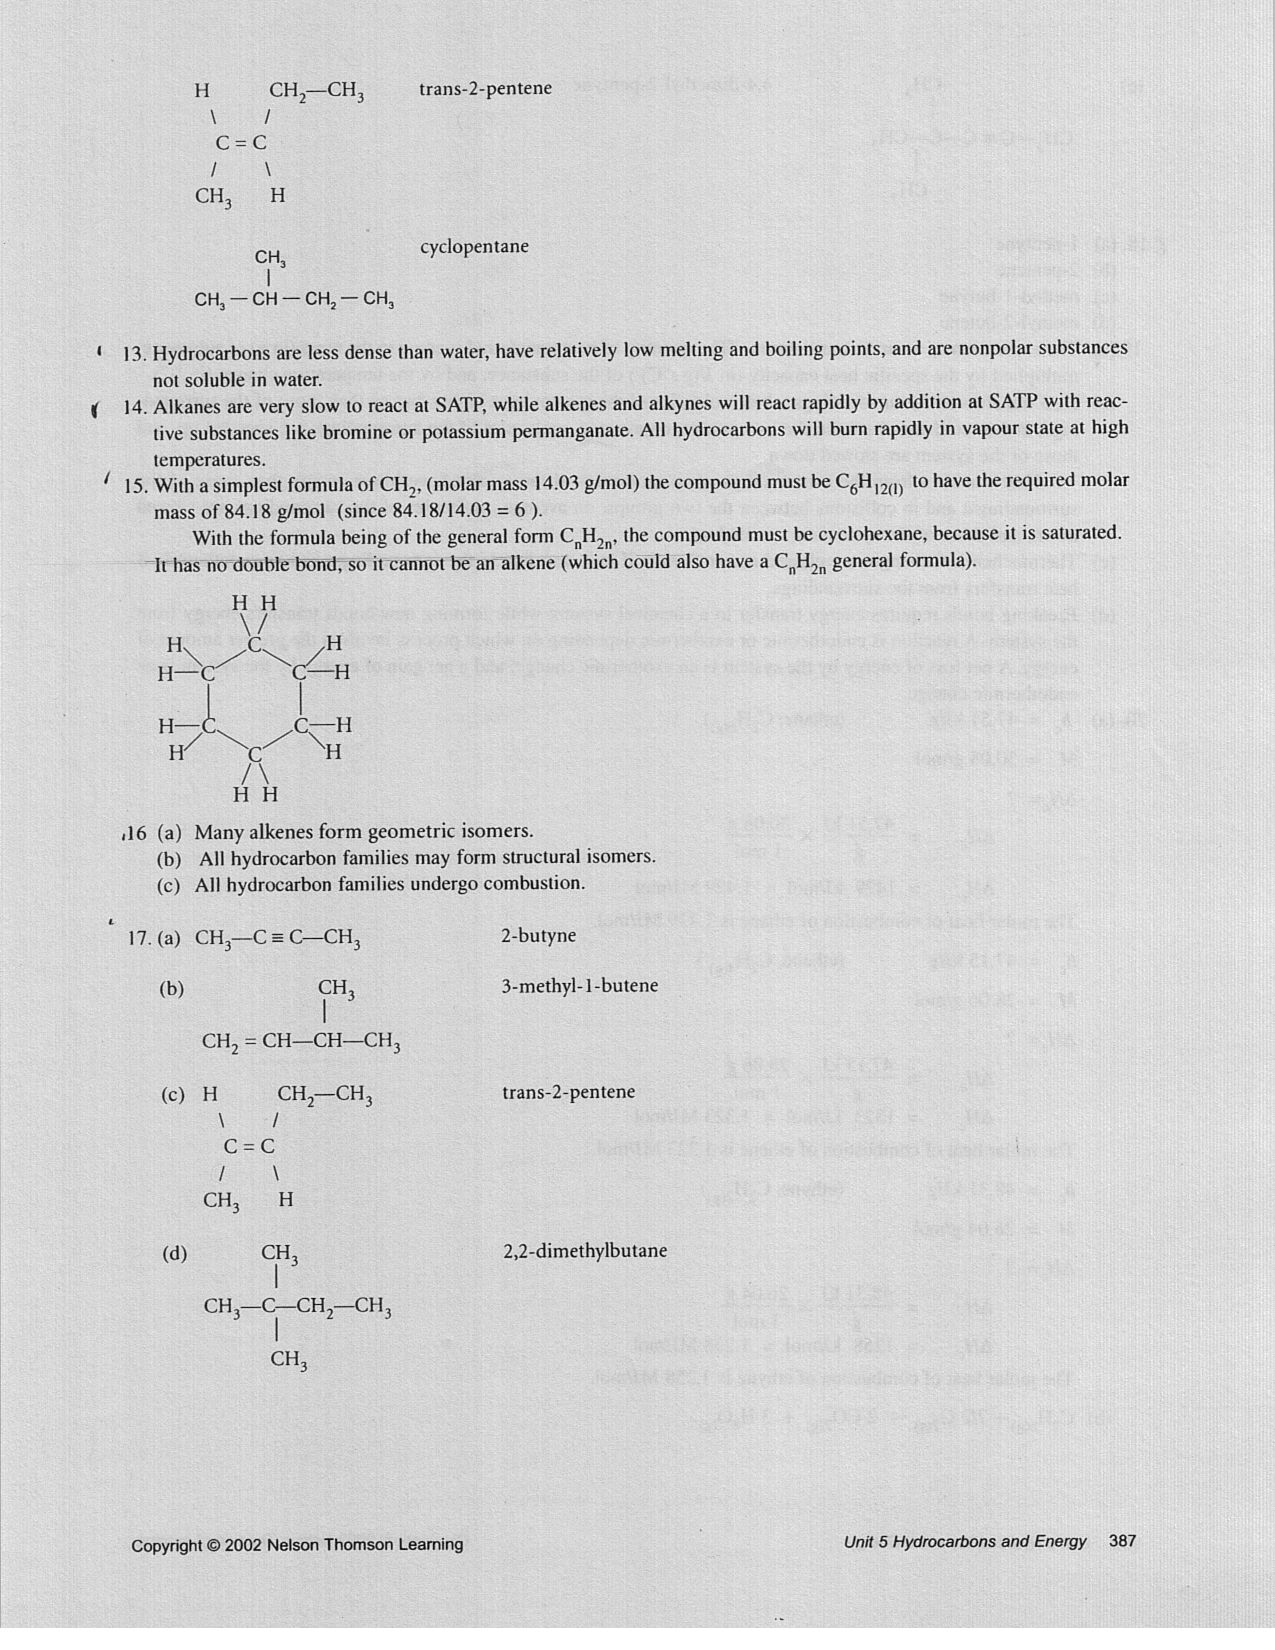 hight resolution of mathball / Grade 11 Chemistry sem 2 08-09